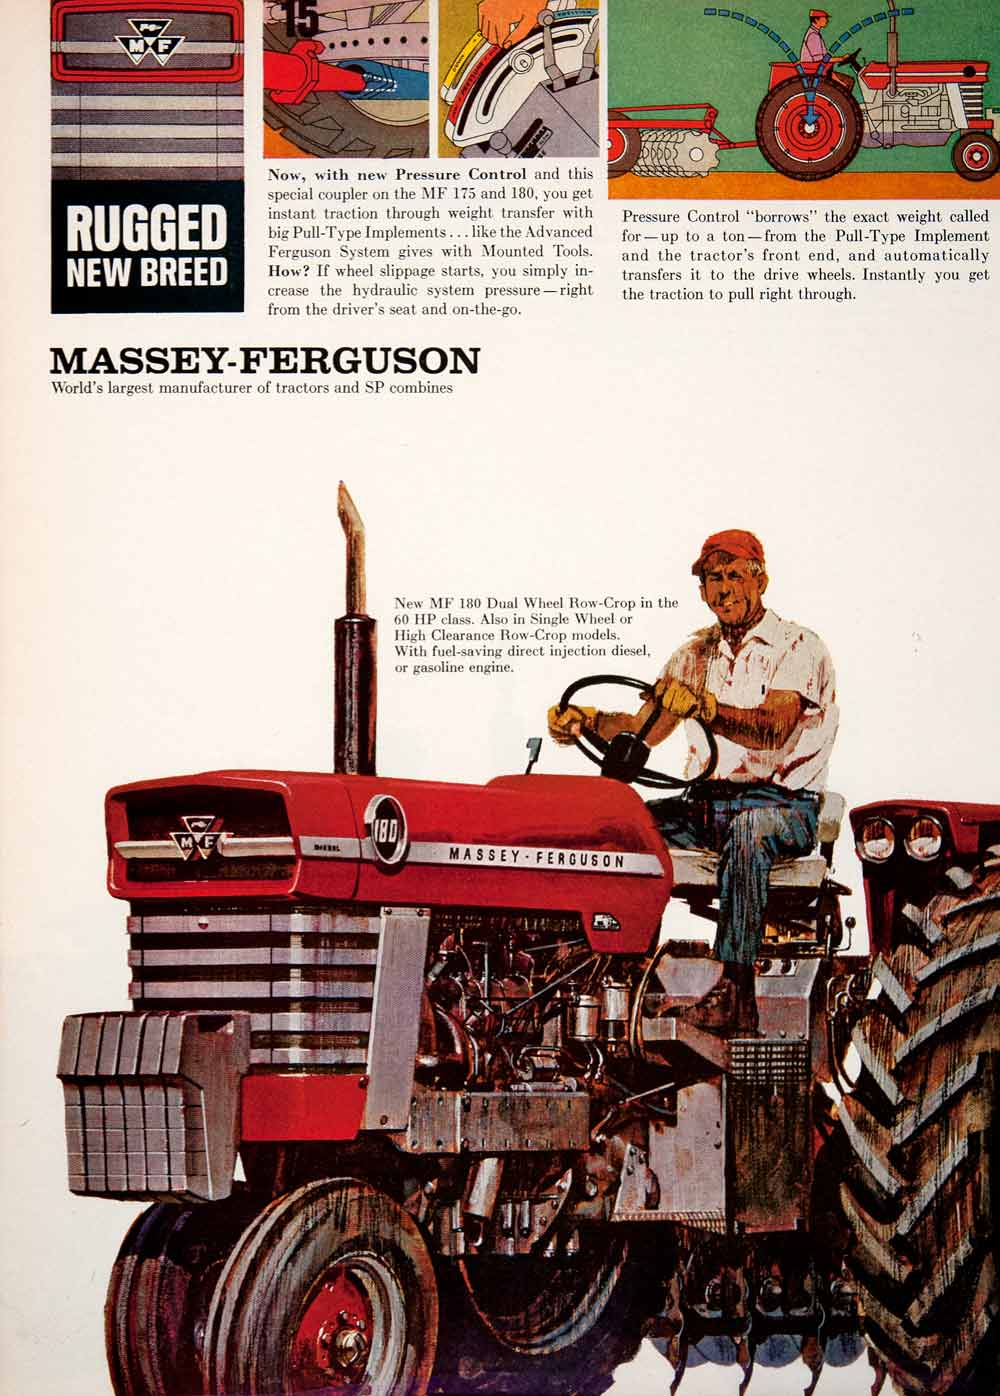 vintage advertising art tagged tractors farming period paper Massey Ferguson Compact Tractors 1965 ad massey ferguson tractor agriculture farming detroit michigan farmer sf4